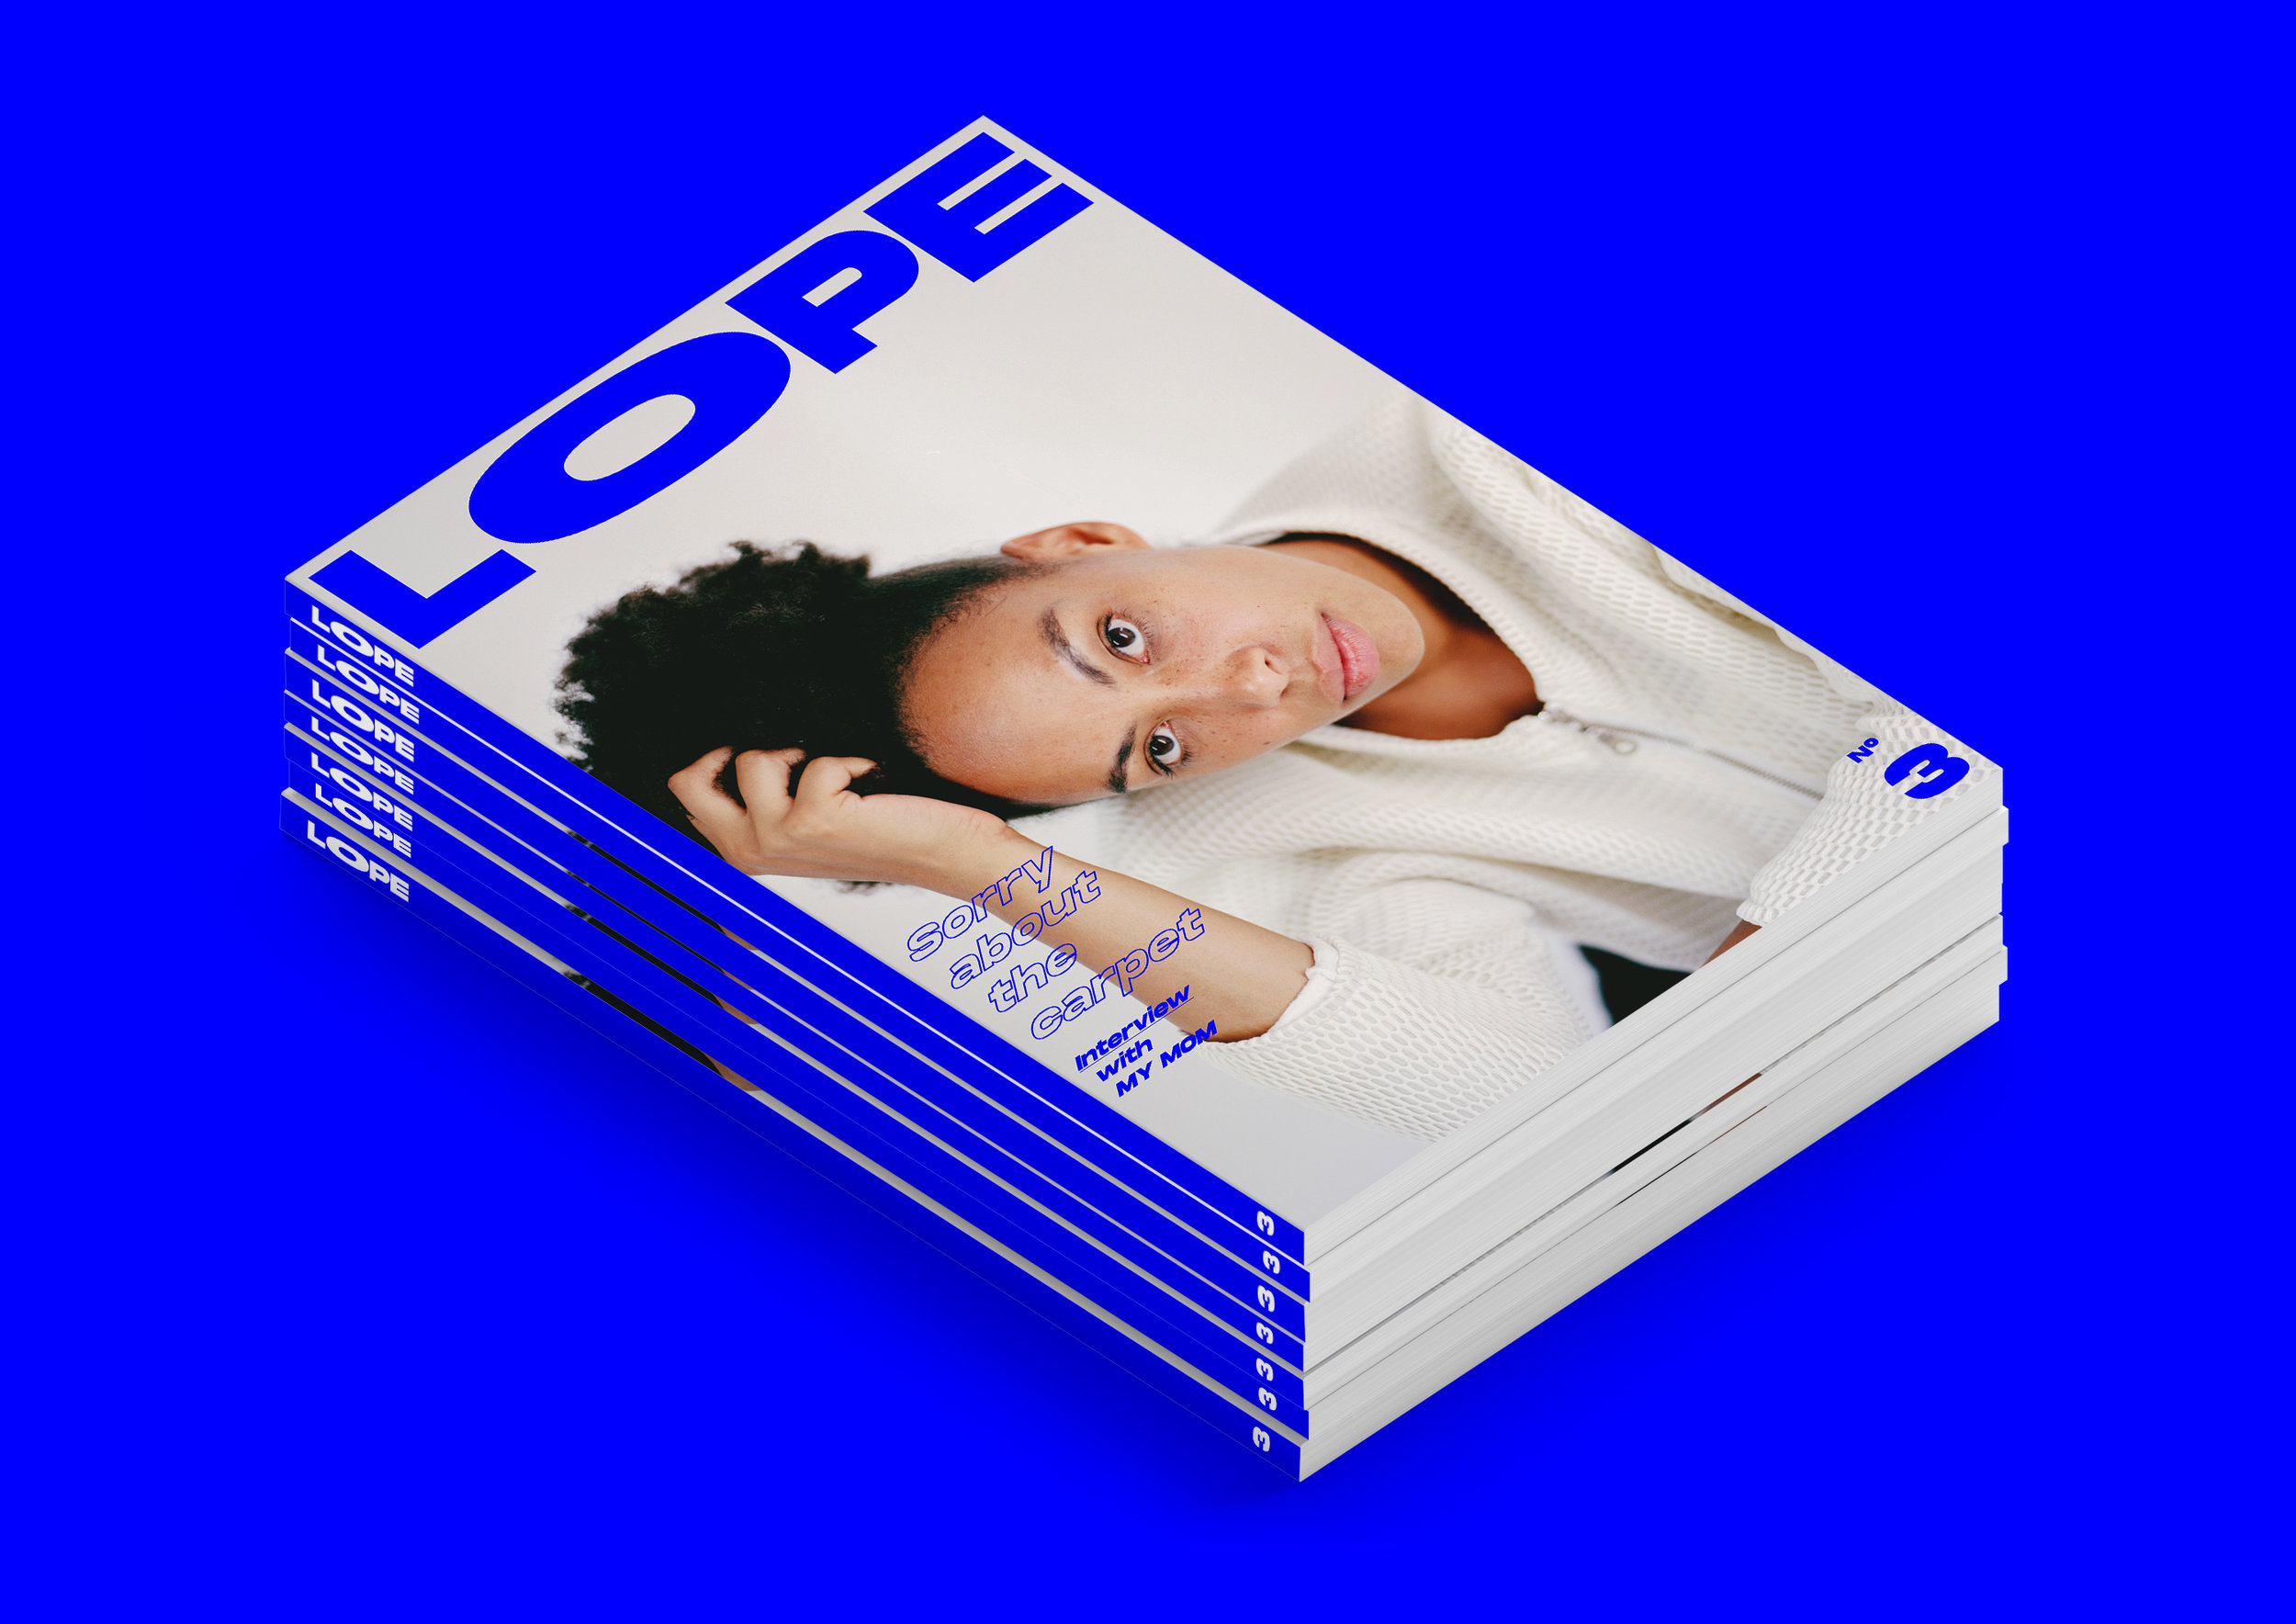 sleepless_creative_lope_magazine_web_1.jpg